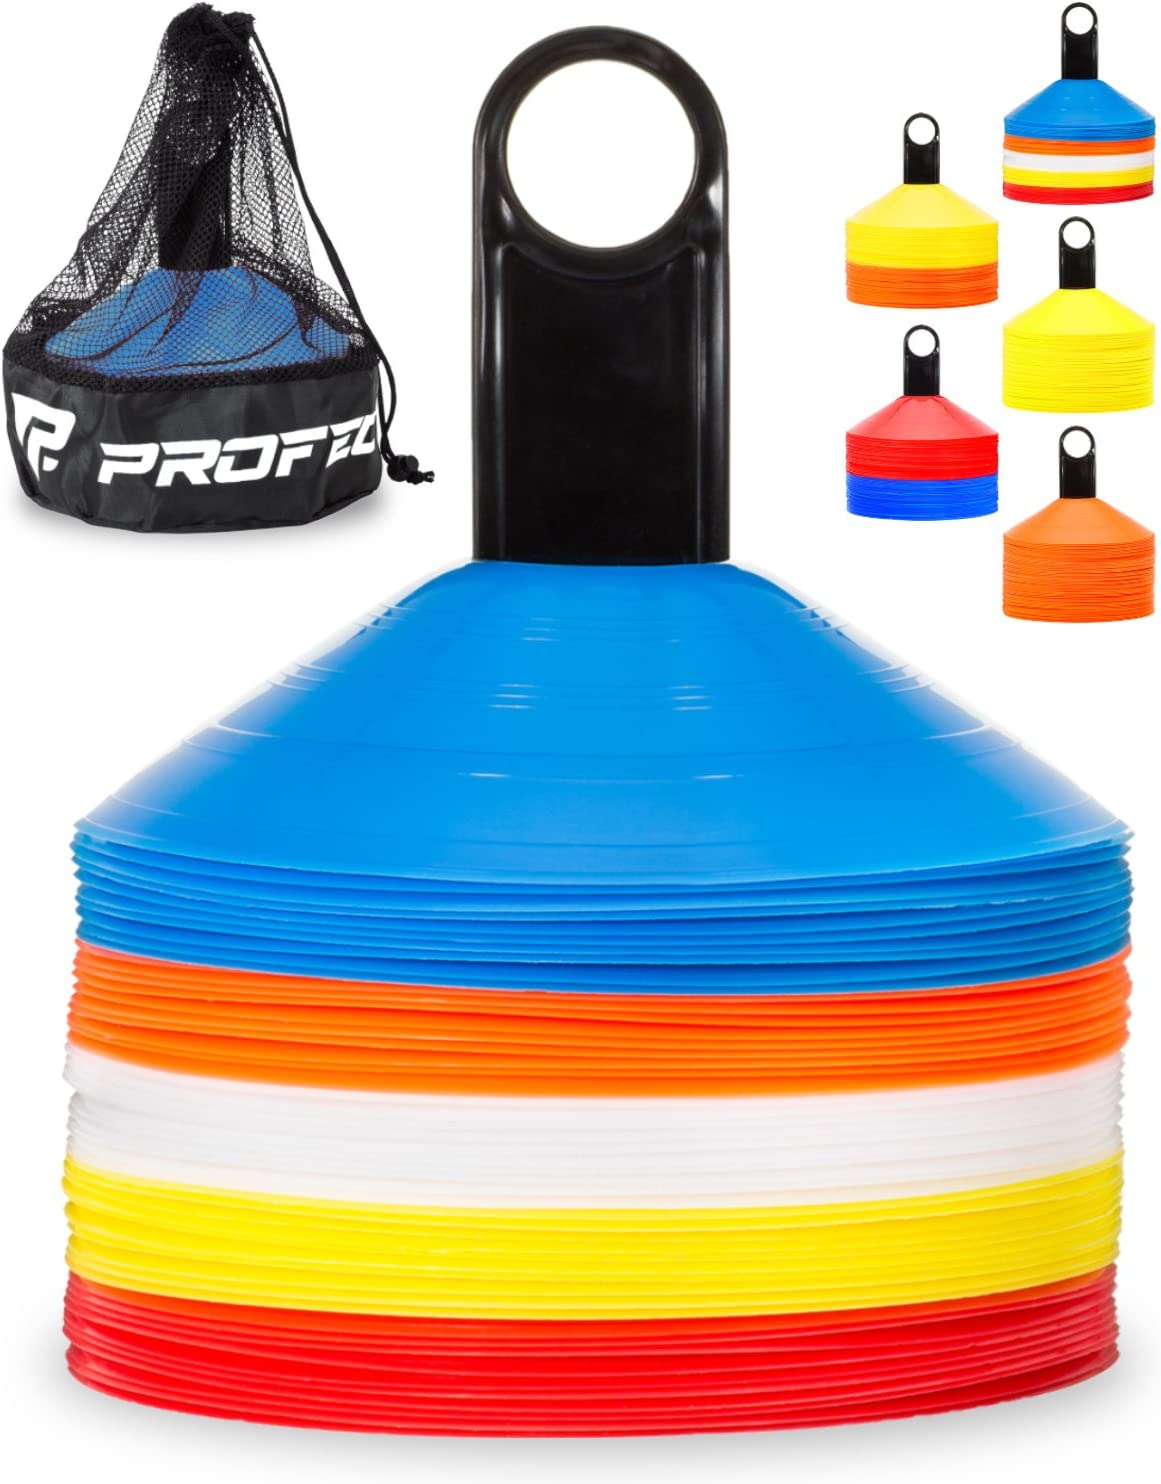 Pro Disc Cones (Set of 50) - Agility Soccer Cones with Carry Bag and Holder for Training, Football, Kids, Sports, Field Cone Markers - Includes Top 15 Drills eBook (Multi-Color) : Sports & Outdoors